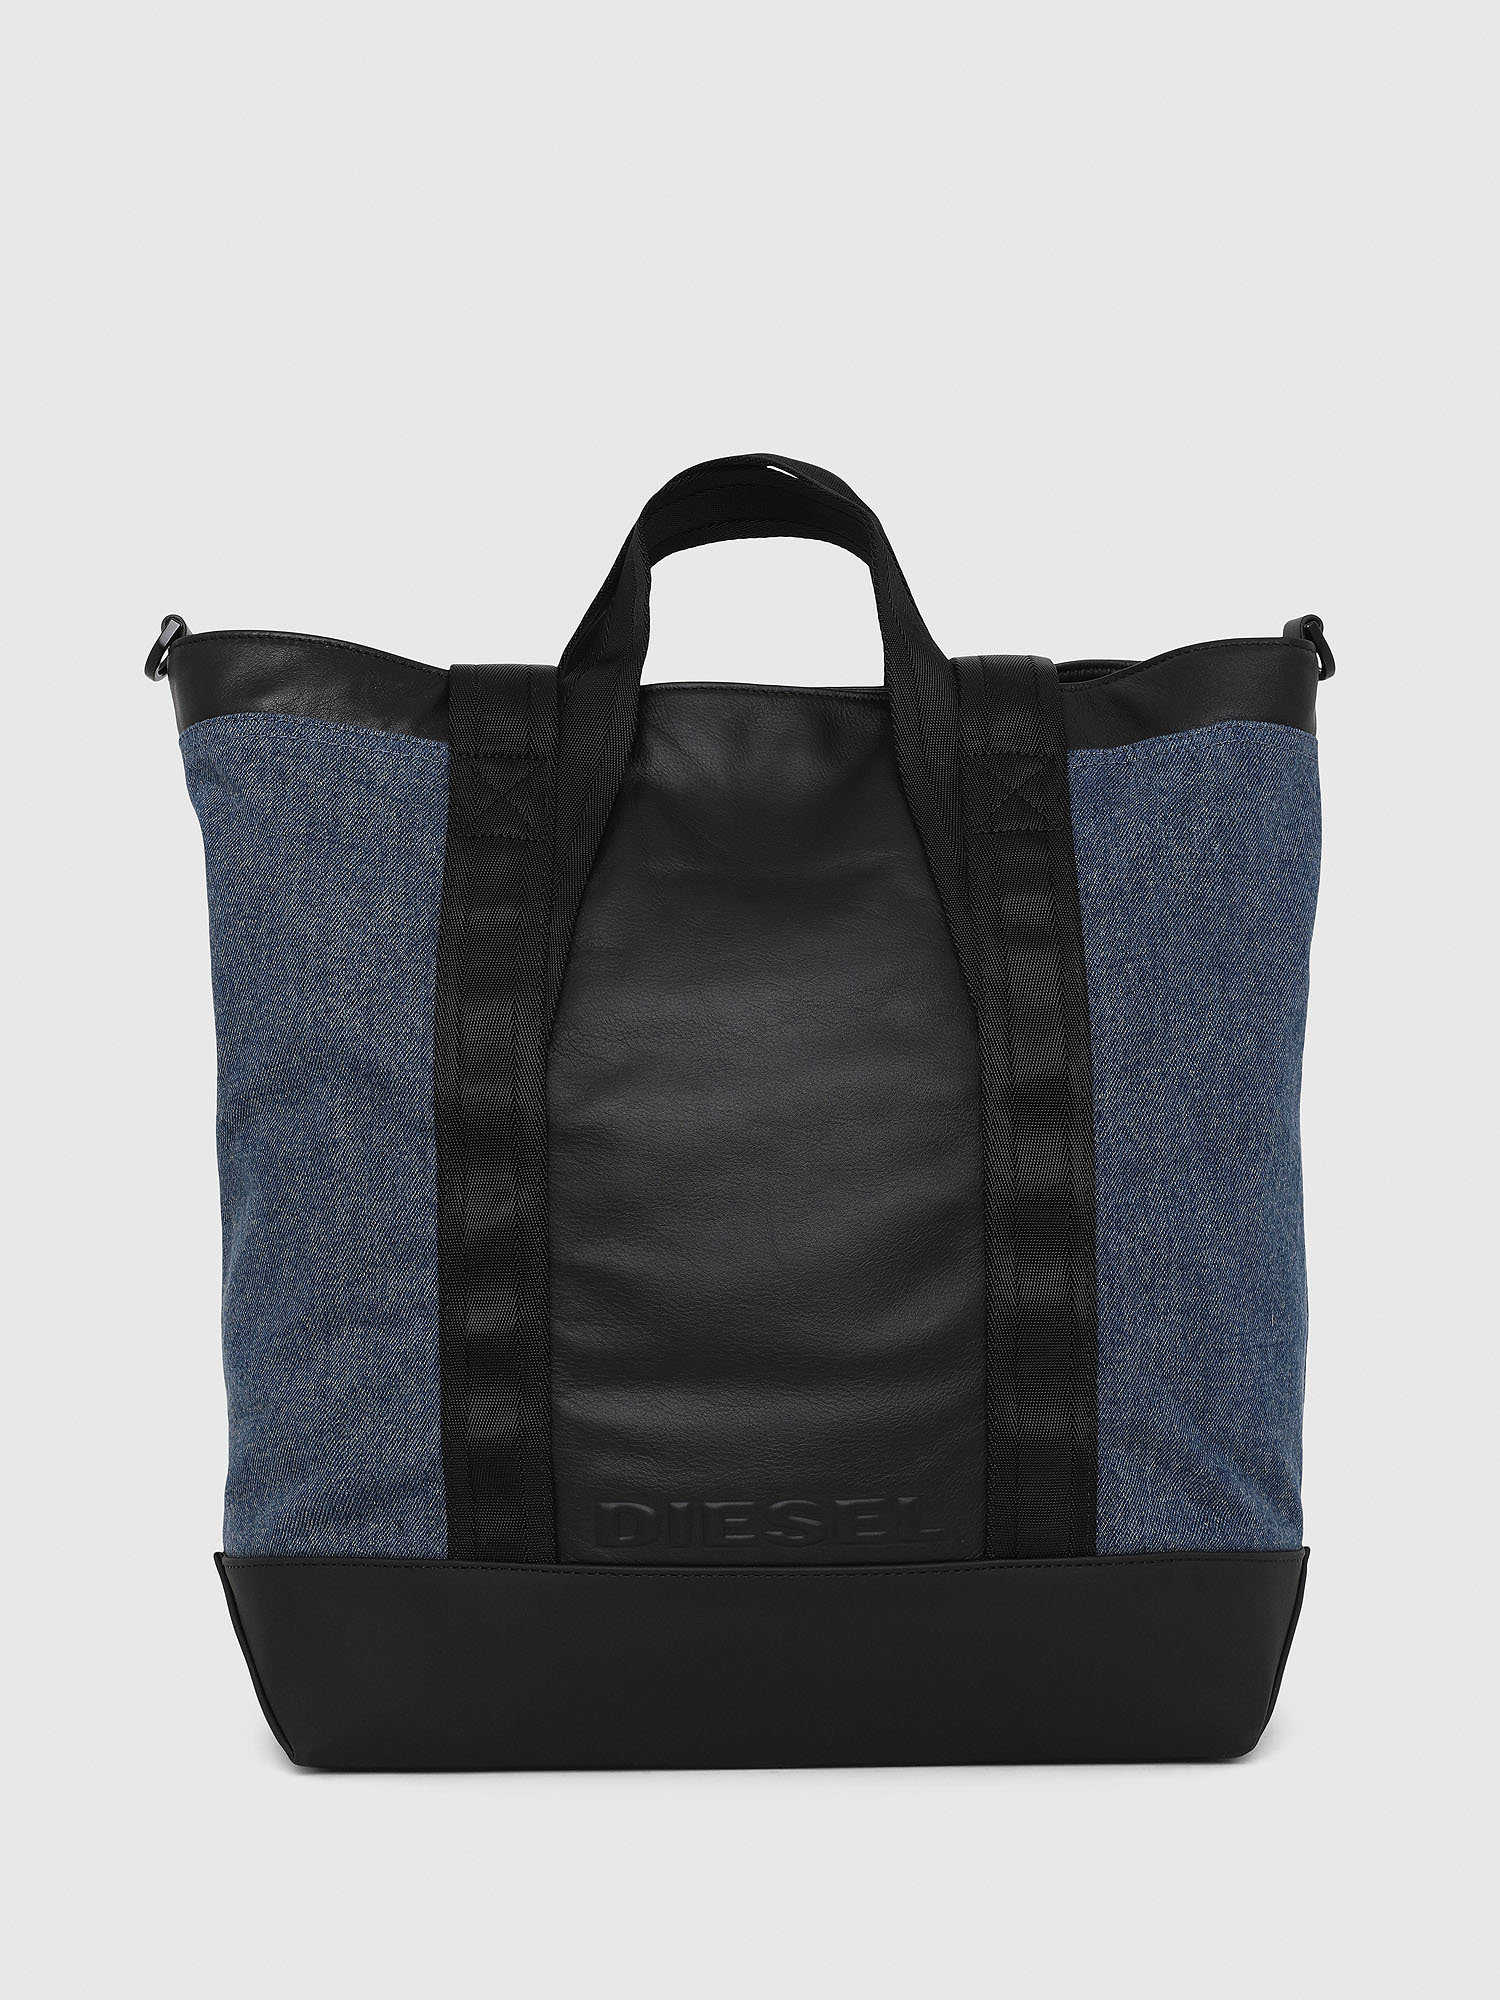 Diesel - SALZANO,  - Shopping and Shoulder Bags - Image 1